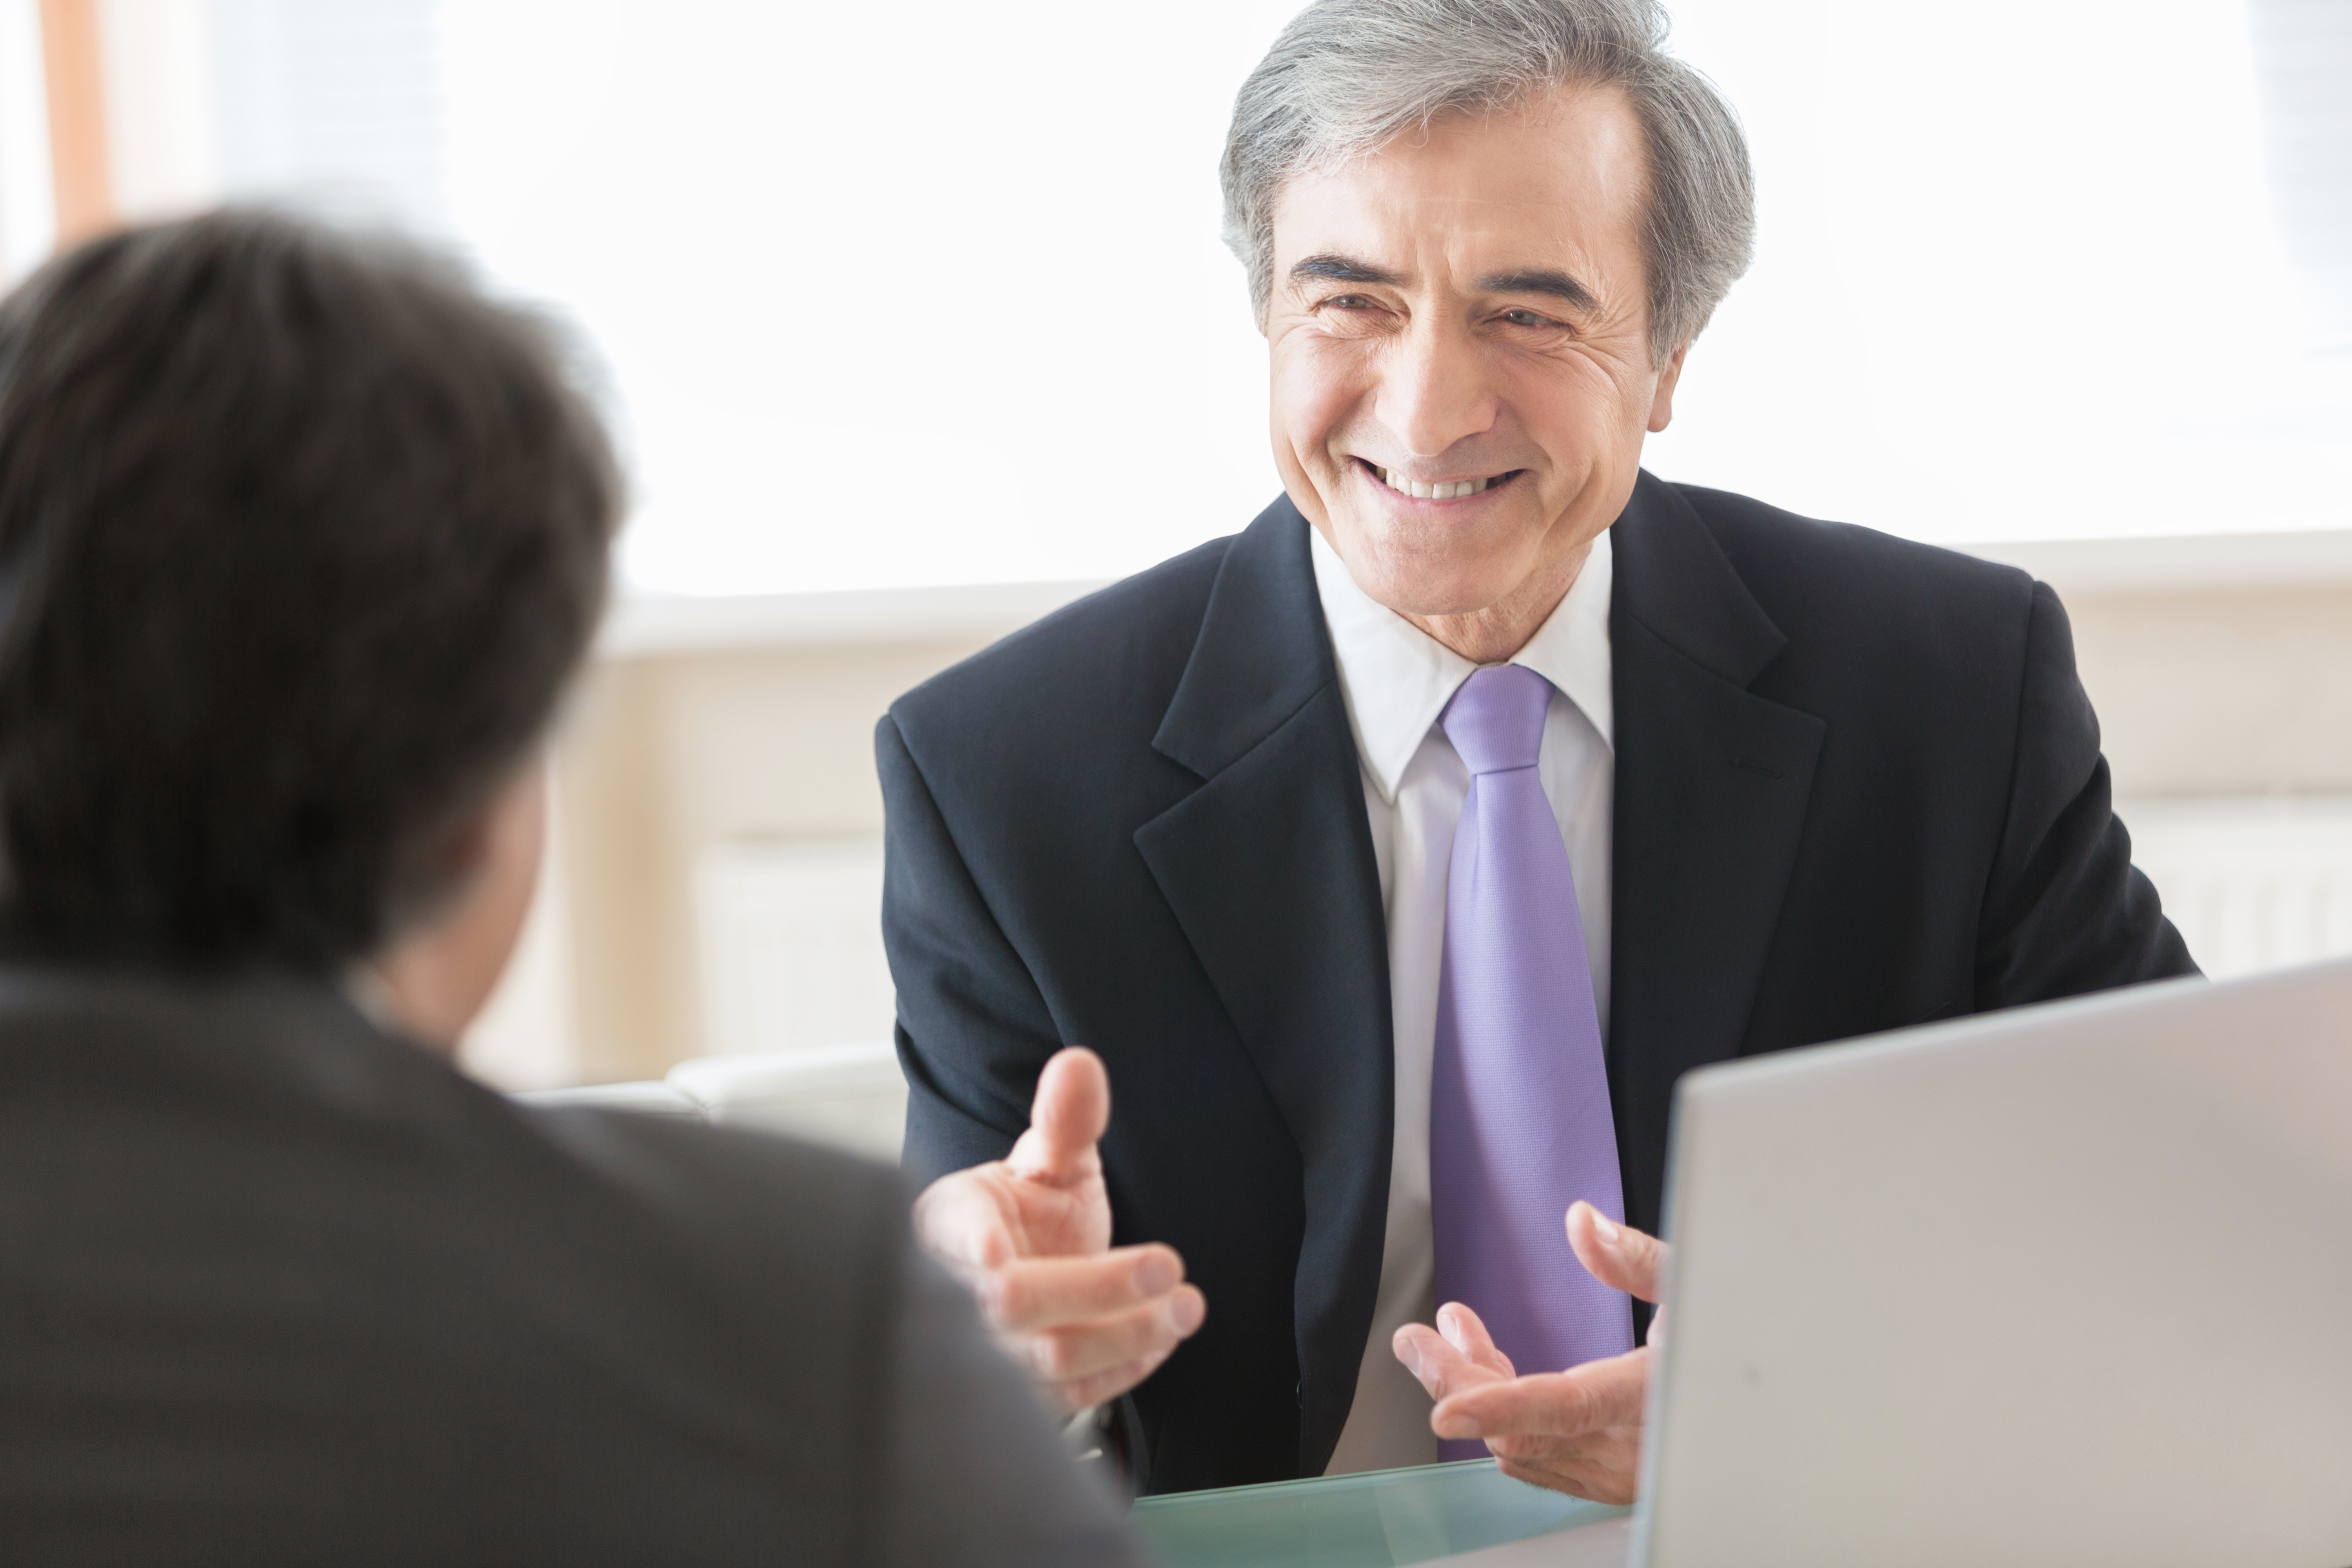 HOW TO ANSWER INTERVIEW QUESTIONS DESIGNED TO TRICK YOU - Image 1